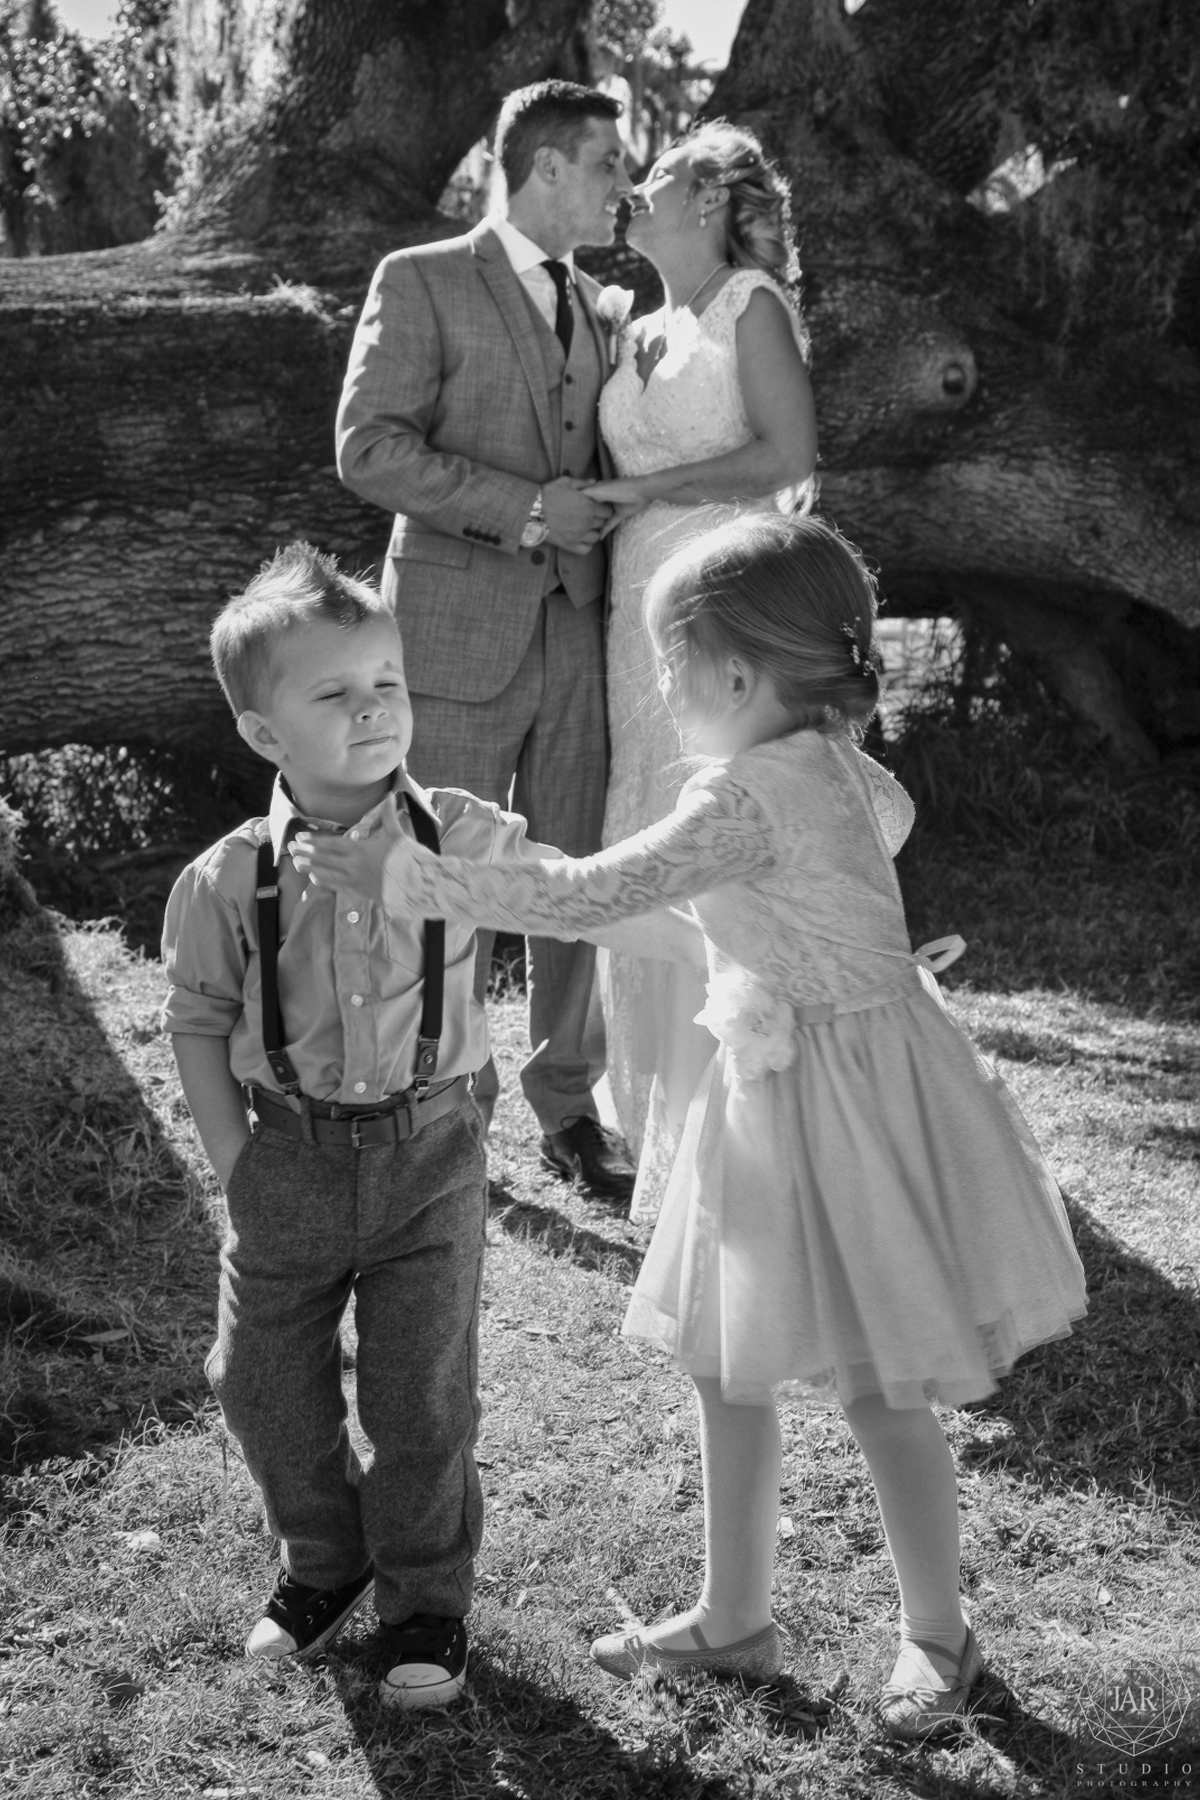 16-kids-wedding-cute-fun-kiss-hipster-suspenders-jarstudio.JPG